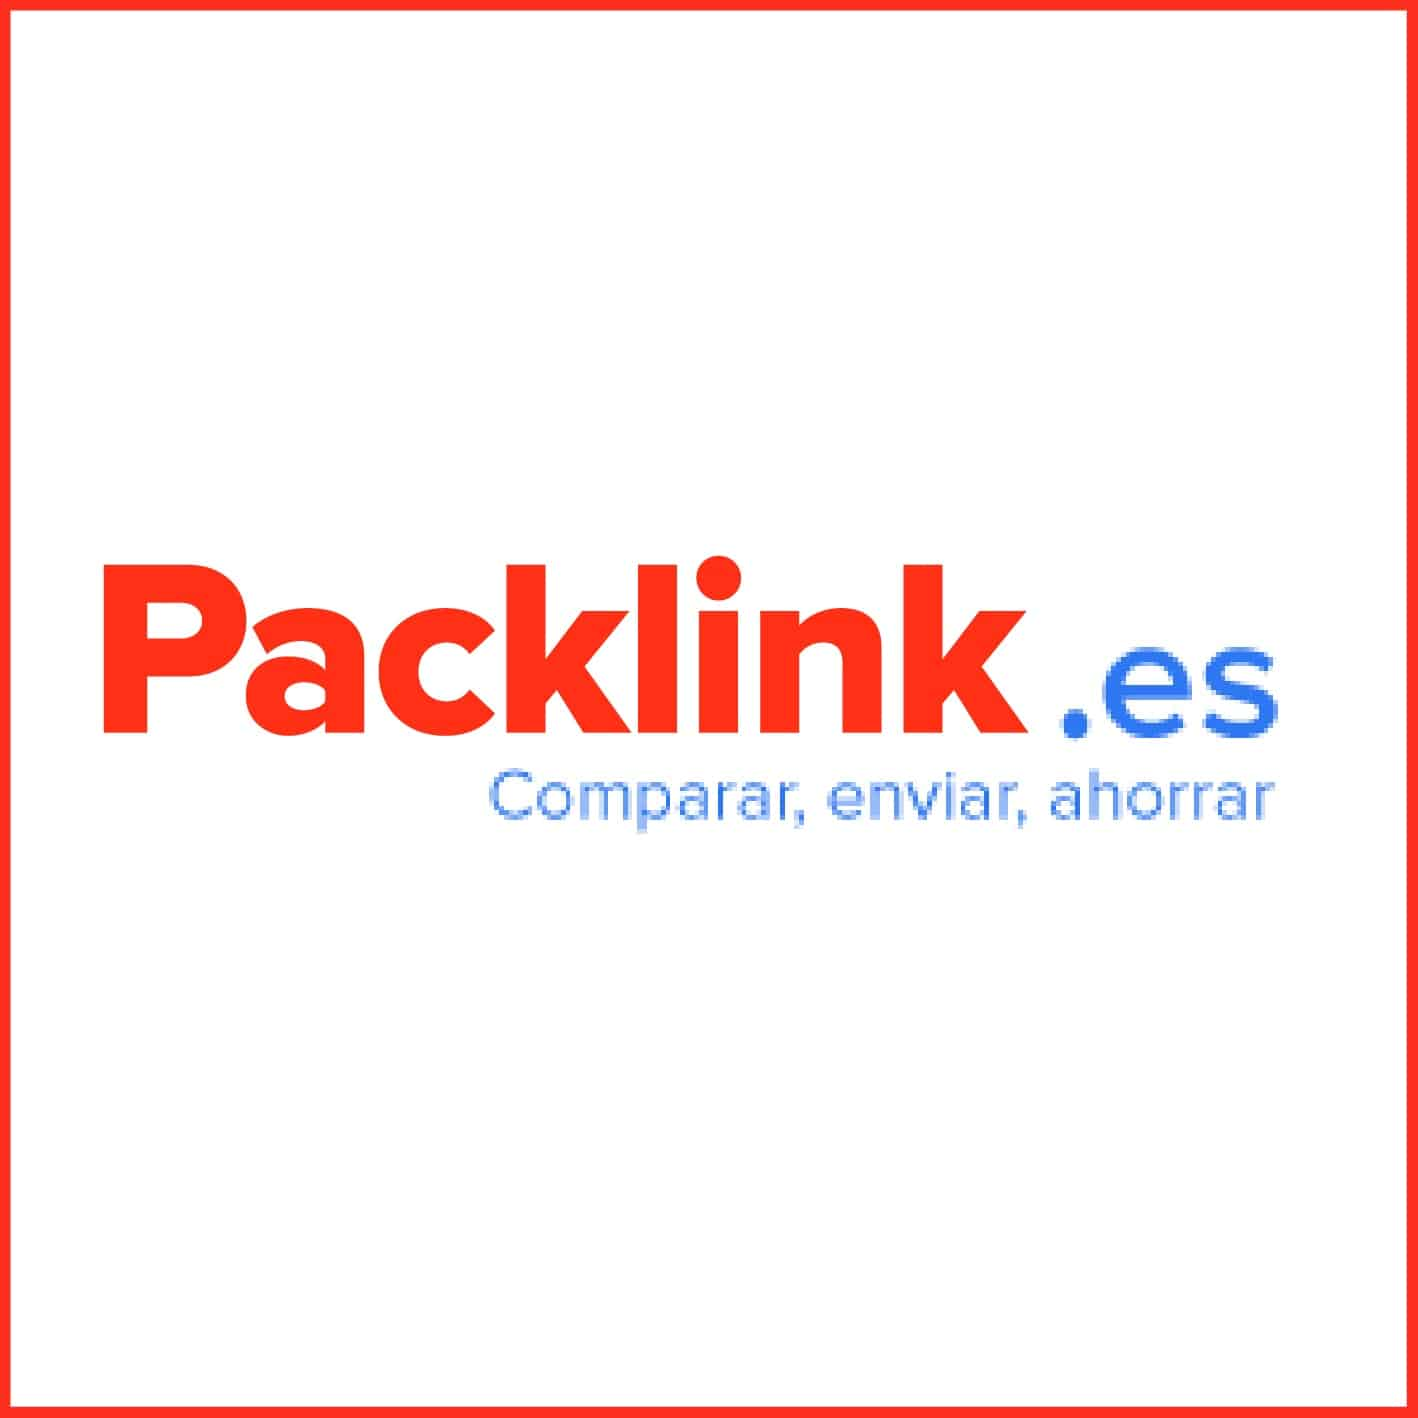 "<span style=""color:red;"">Save 5%</span><br />Packlink: Sending packages worldwide for less!"